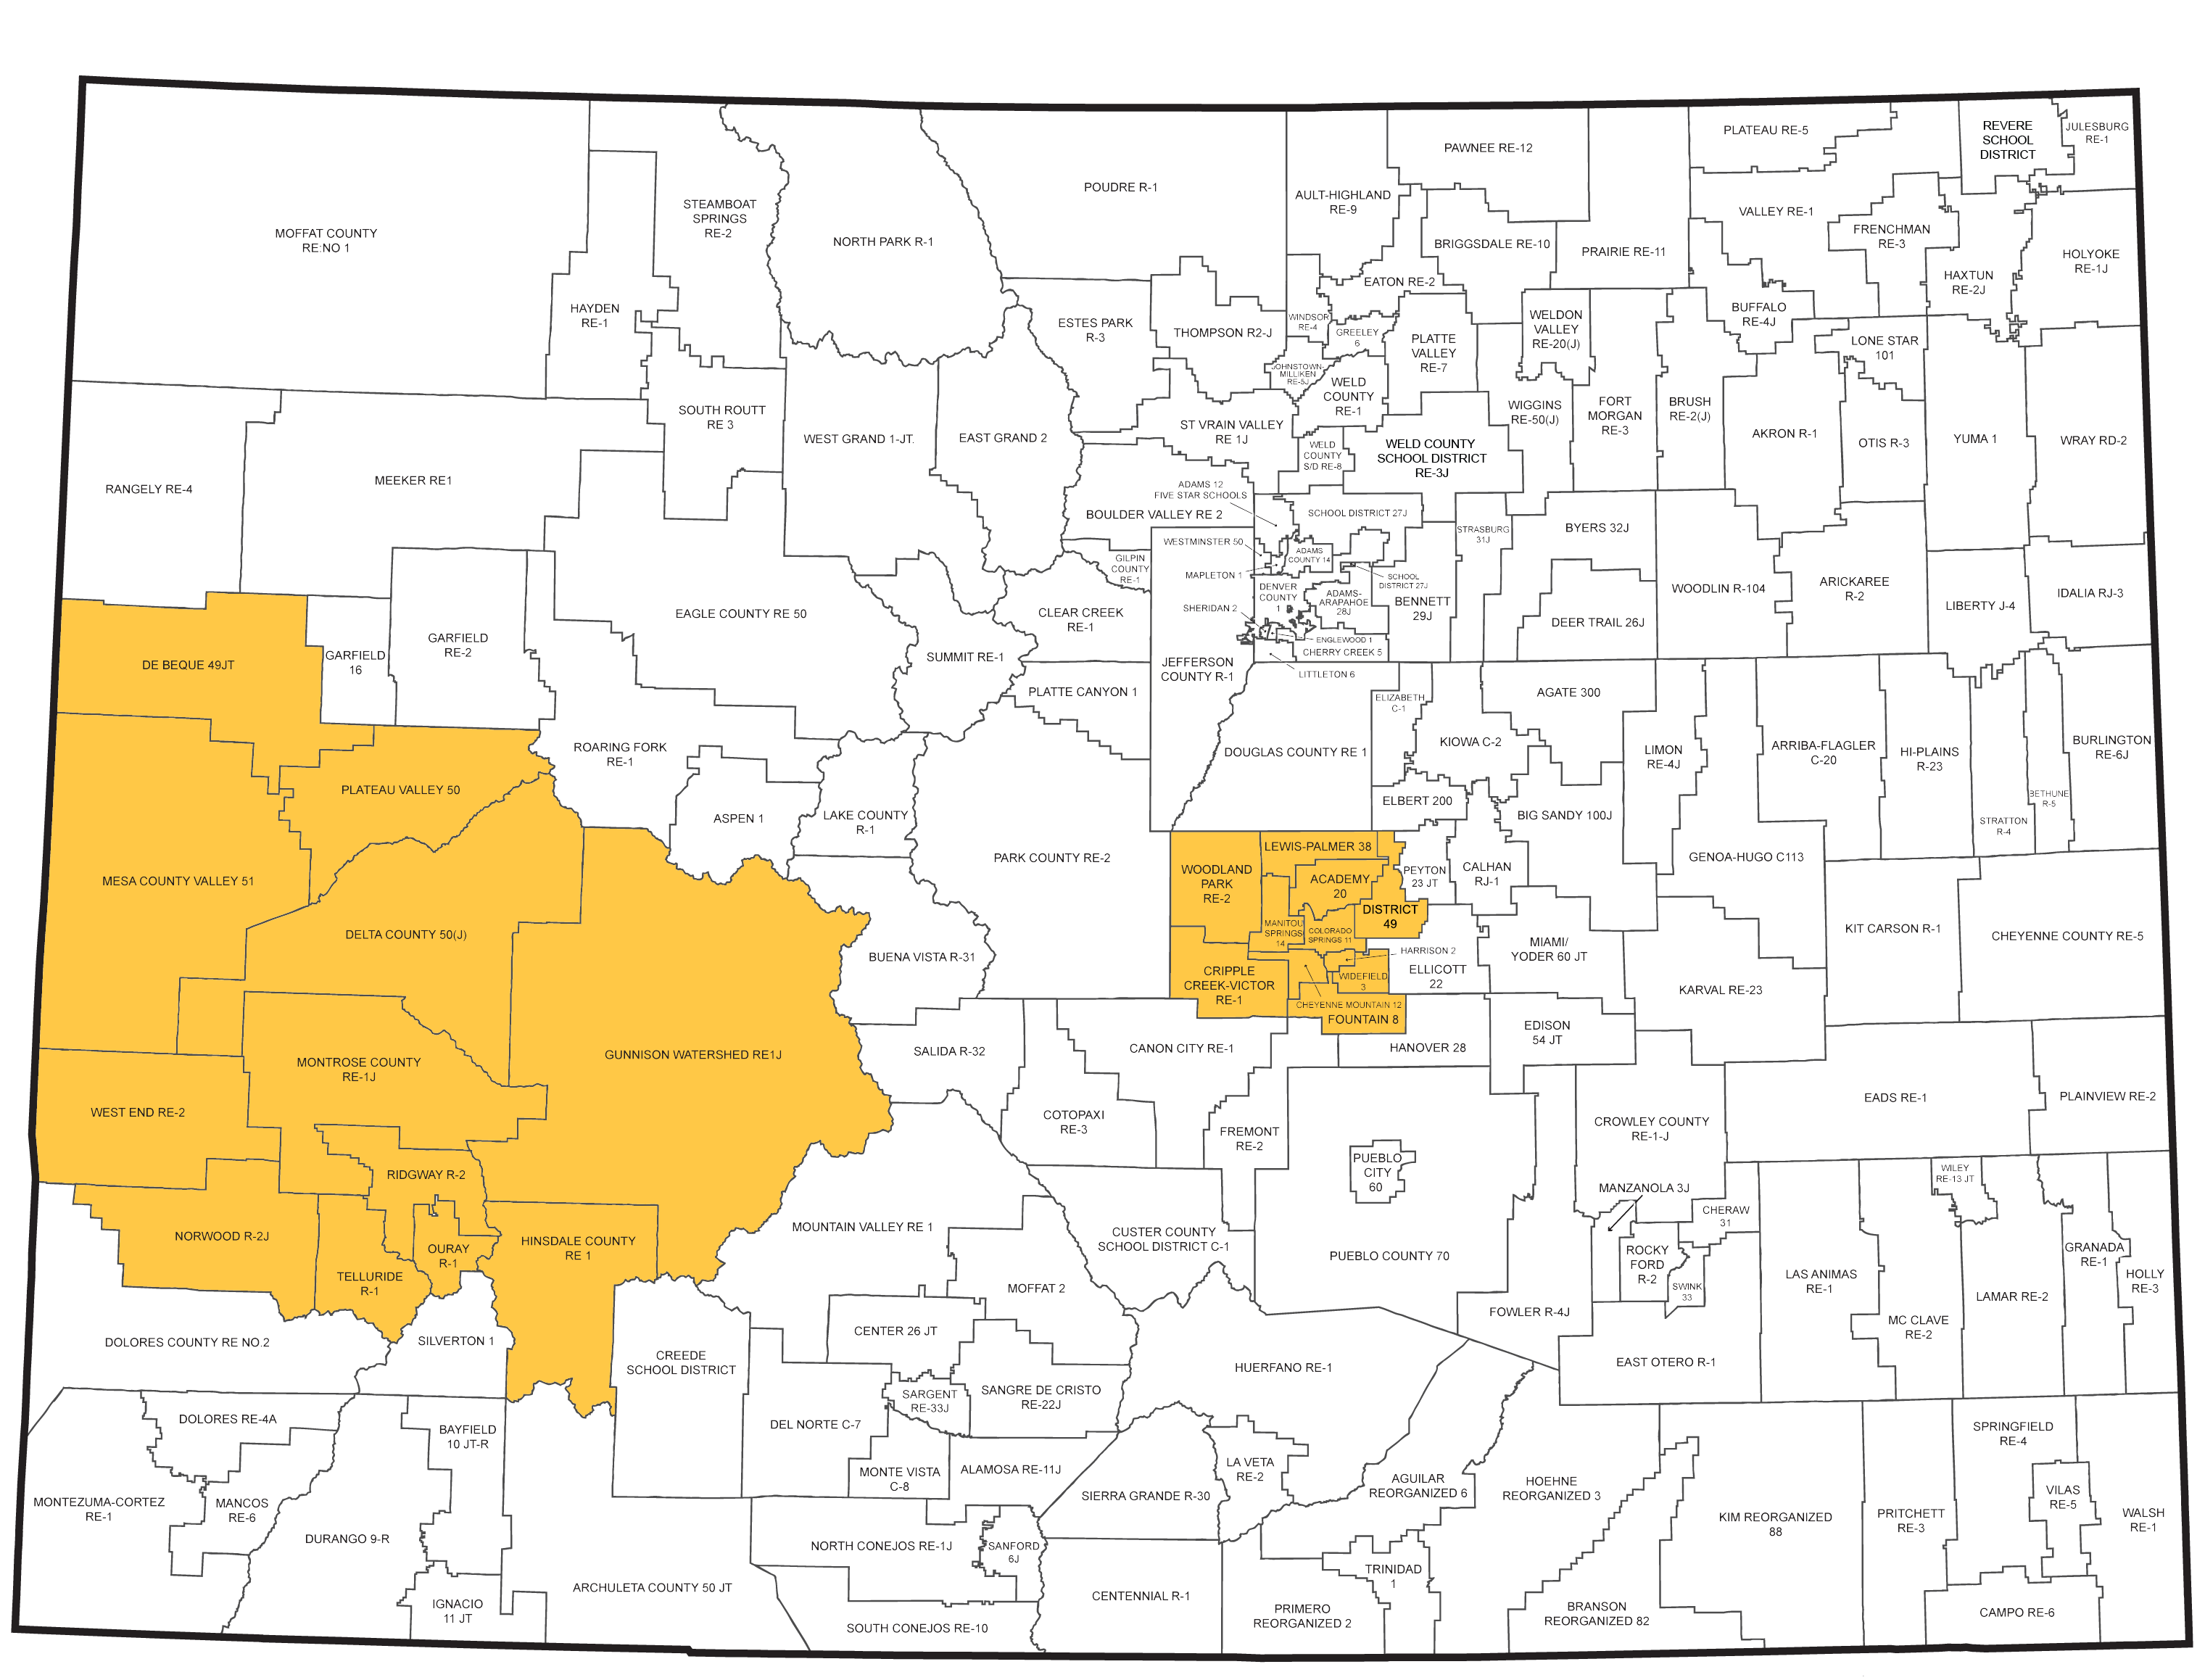 School District Map with West Central and Pikes Peak regions highlighted